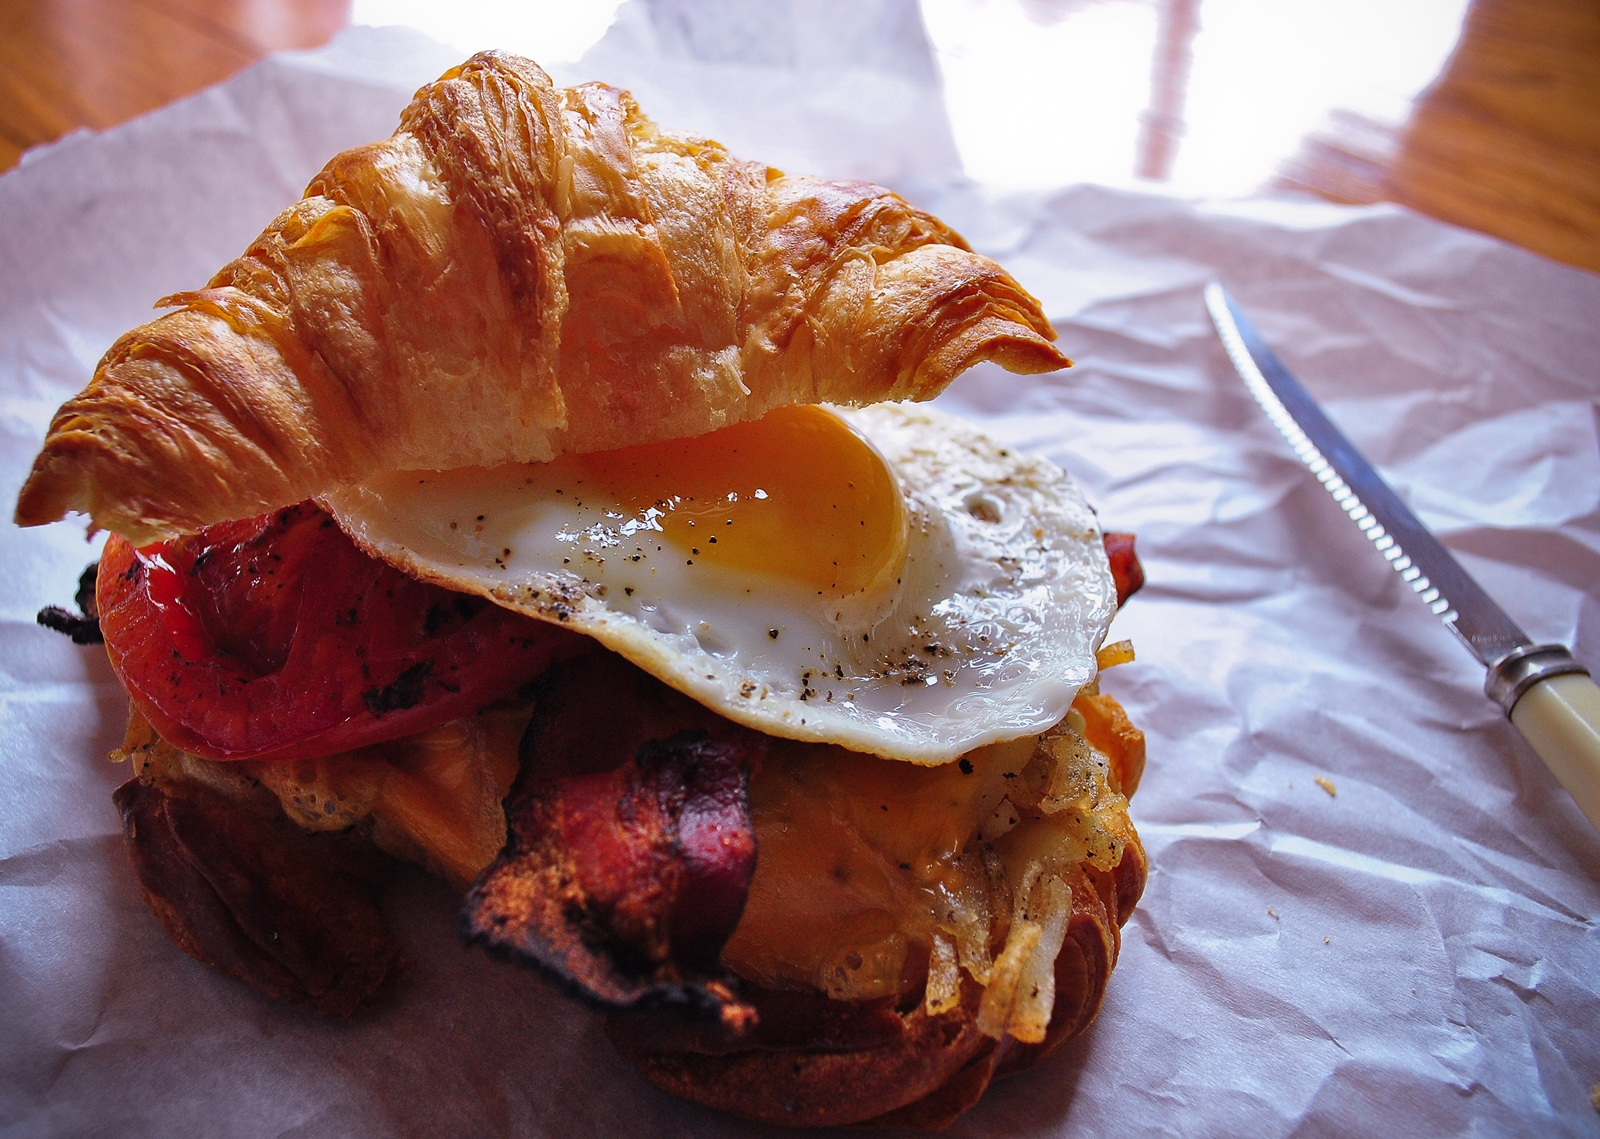 Fluffy croissant breakfast sandwich with crispy bacon, fried egg and hash browns